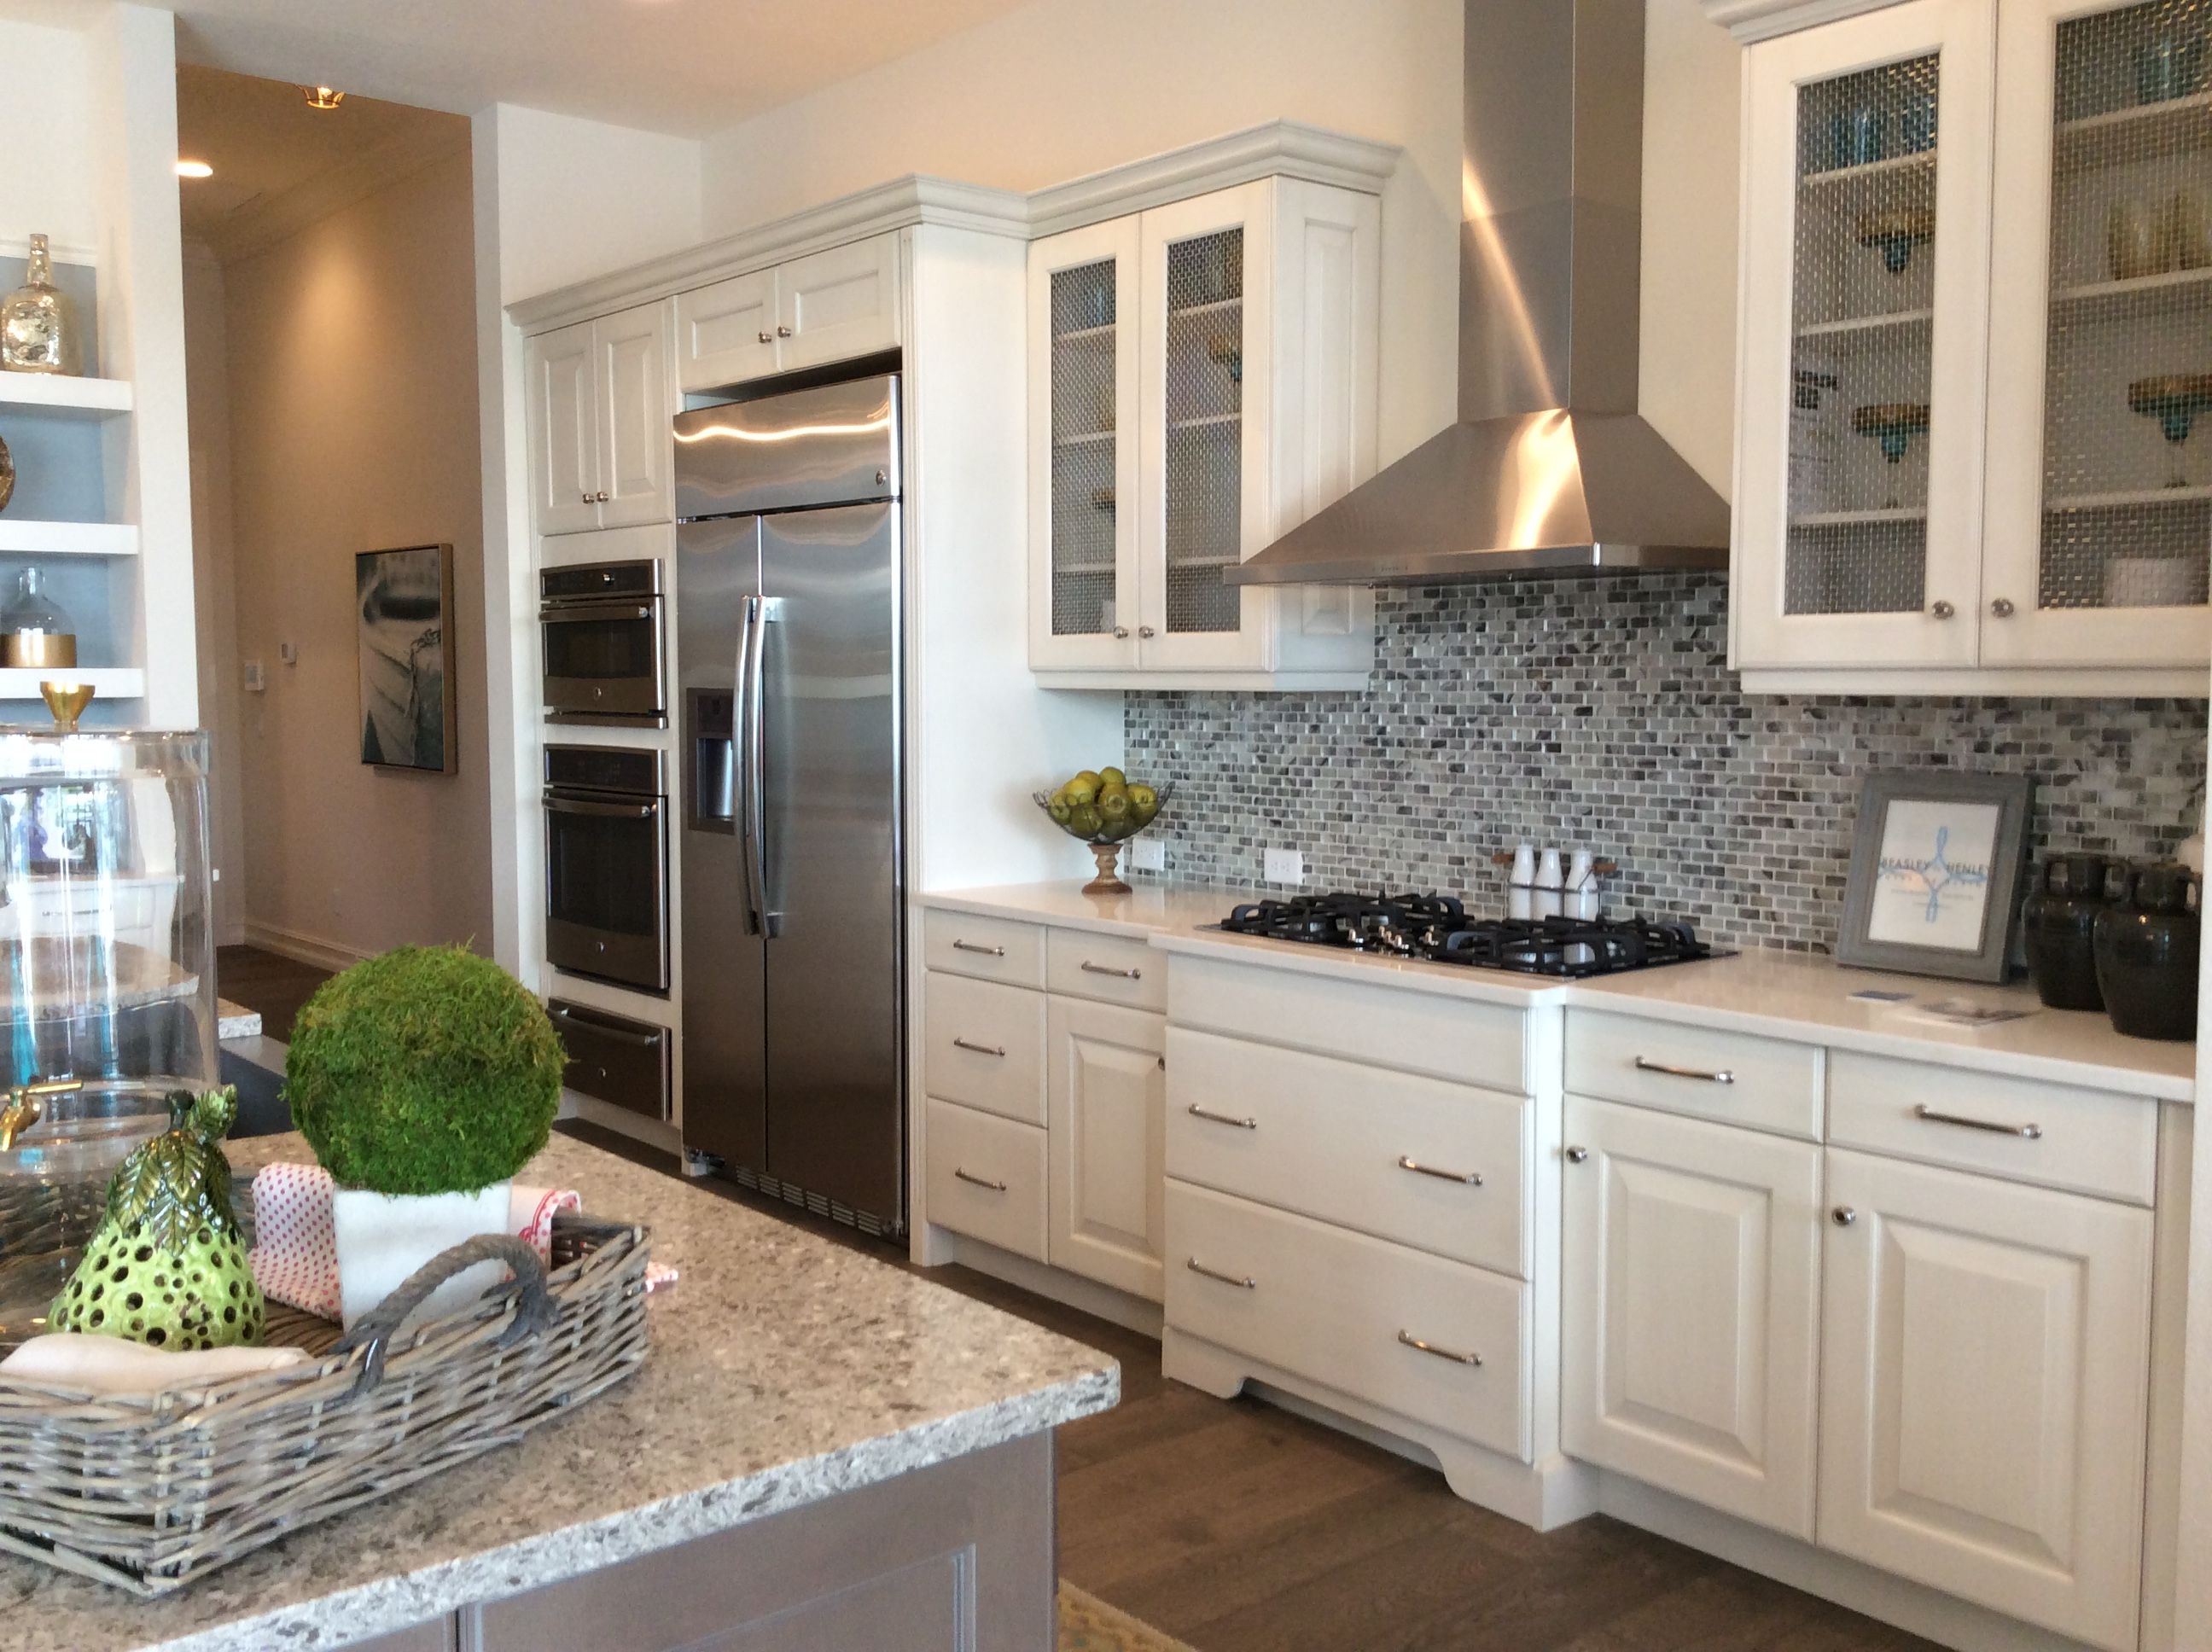 Kitchen design ideas by Beasley  Henley Interior Design WCI Communities home in Naples Florida